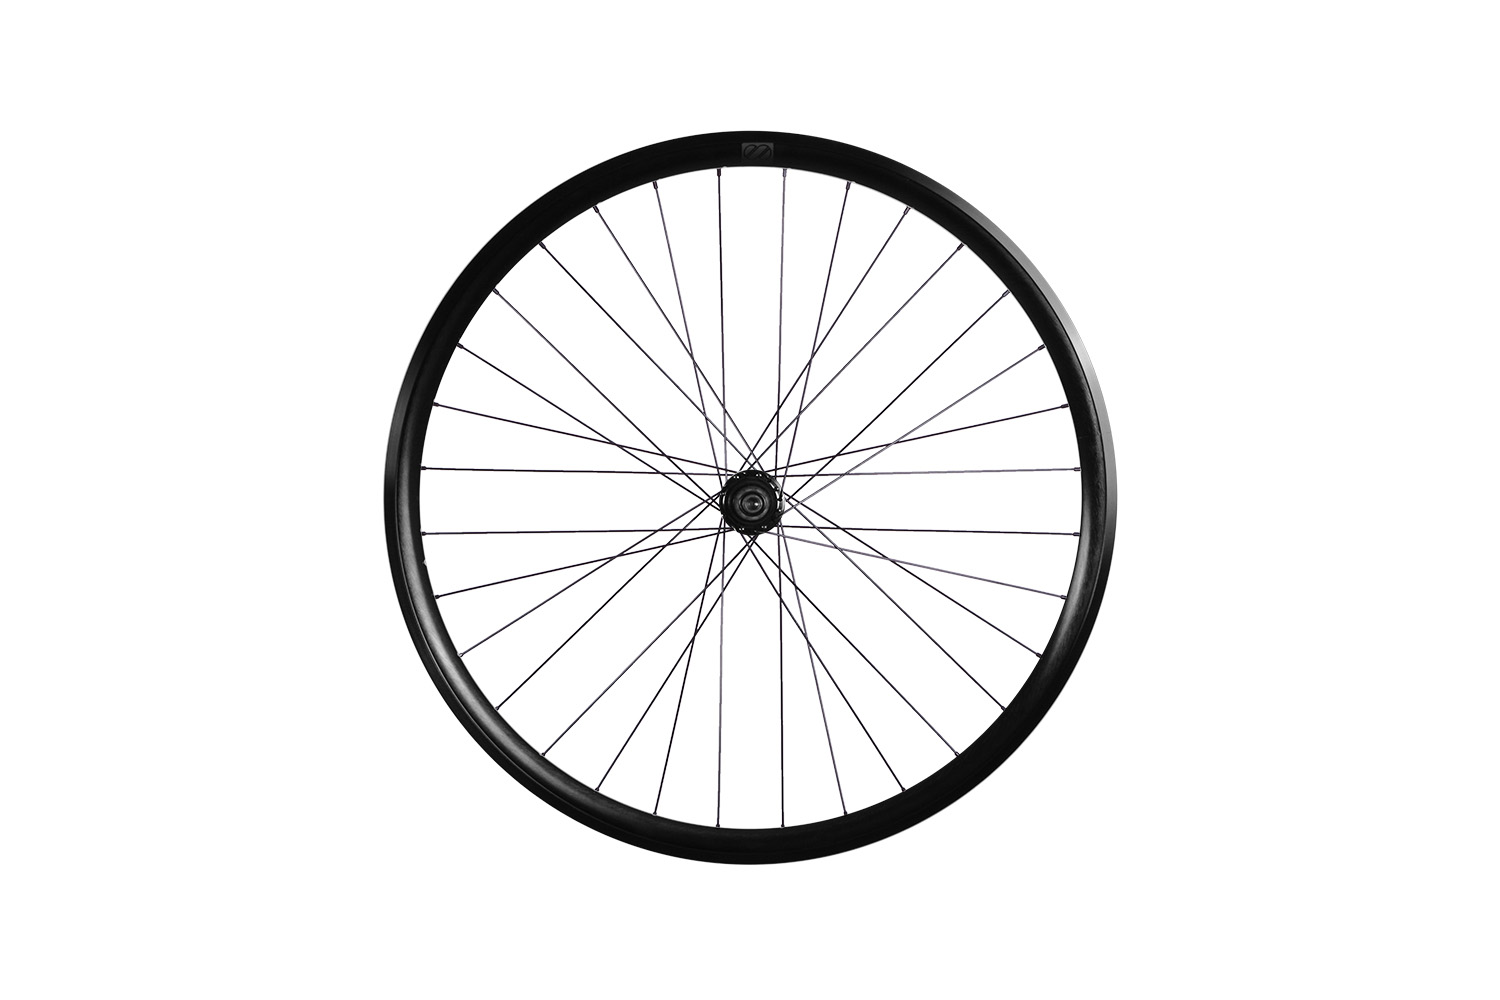 8bar-wheels-super-black-rear-fixie-fixedgear